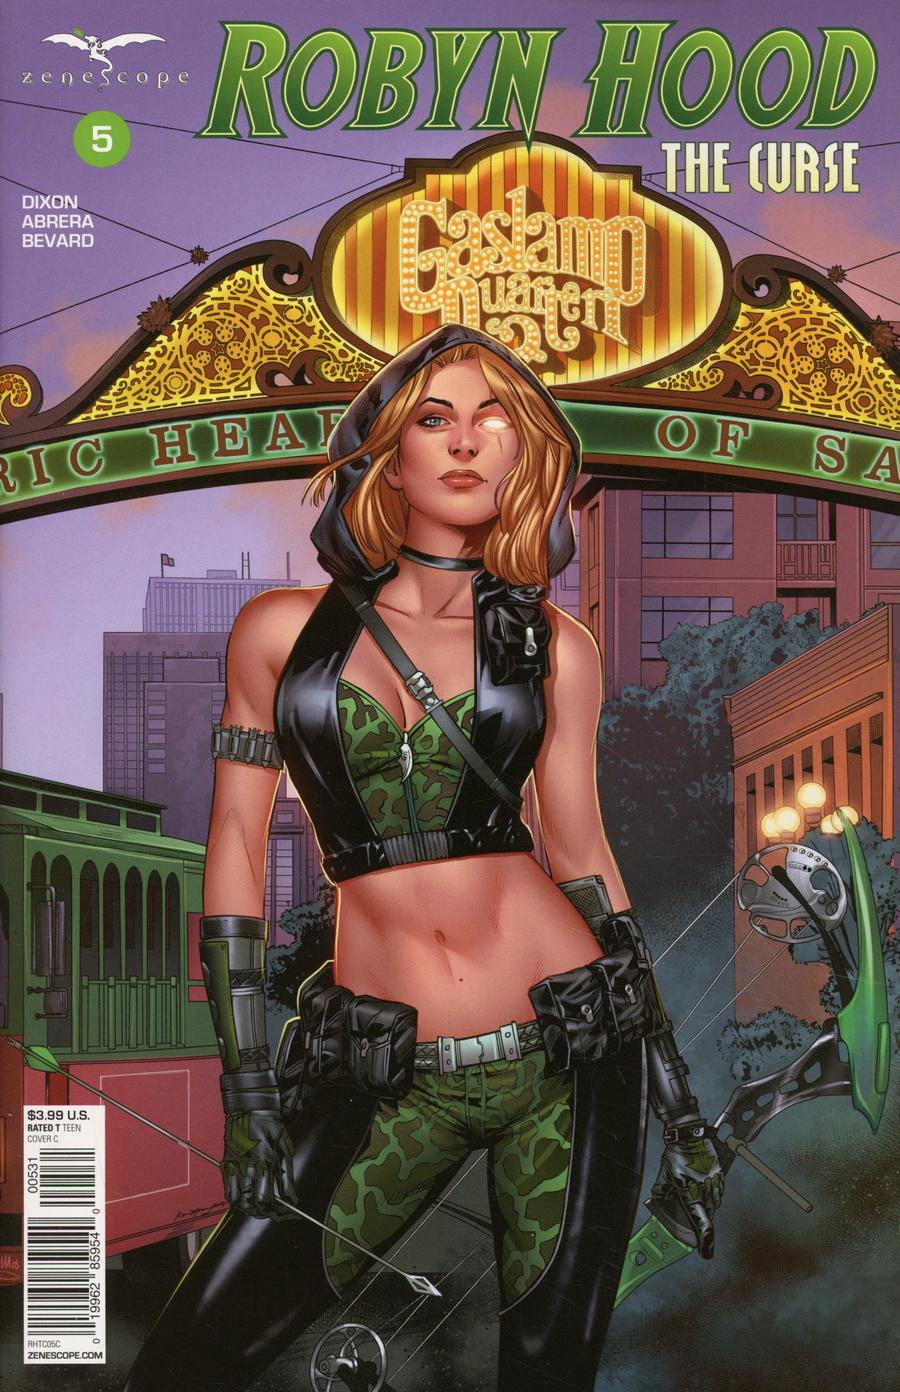 Grimm Fairy Tales Presents Robyn Hood The Curse #5 Cover C Kevin McCoy